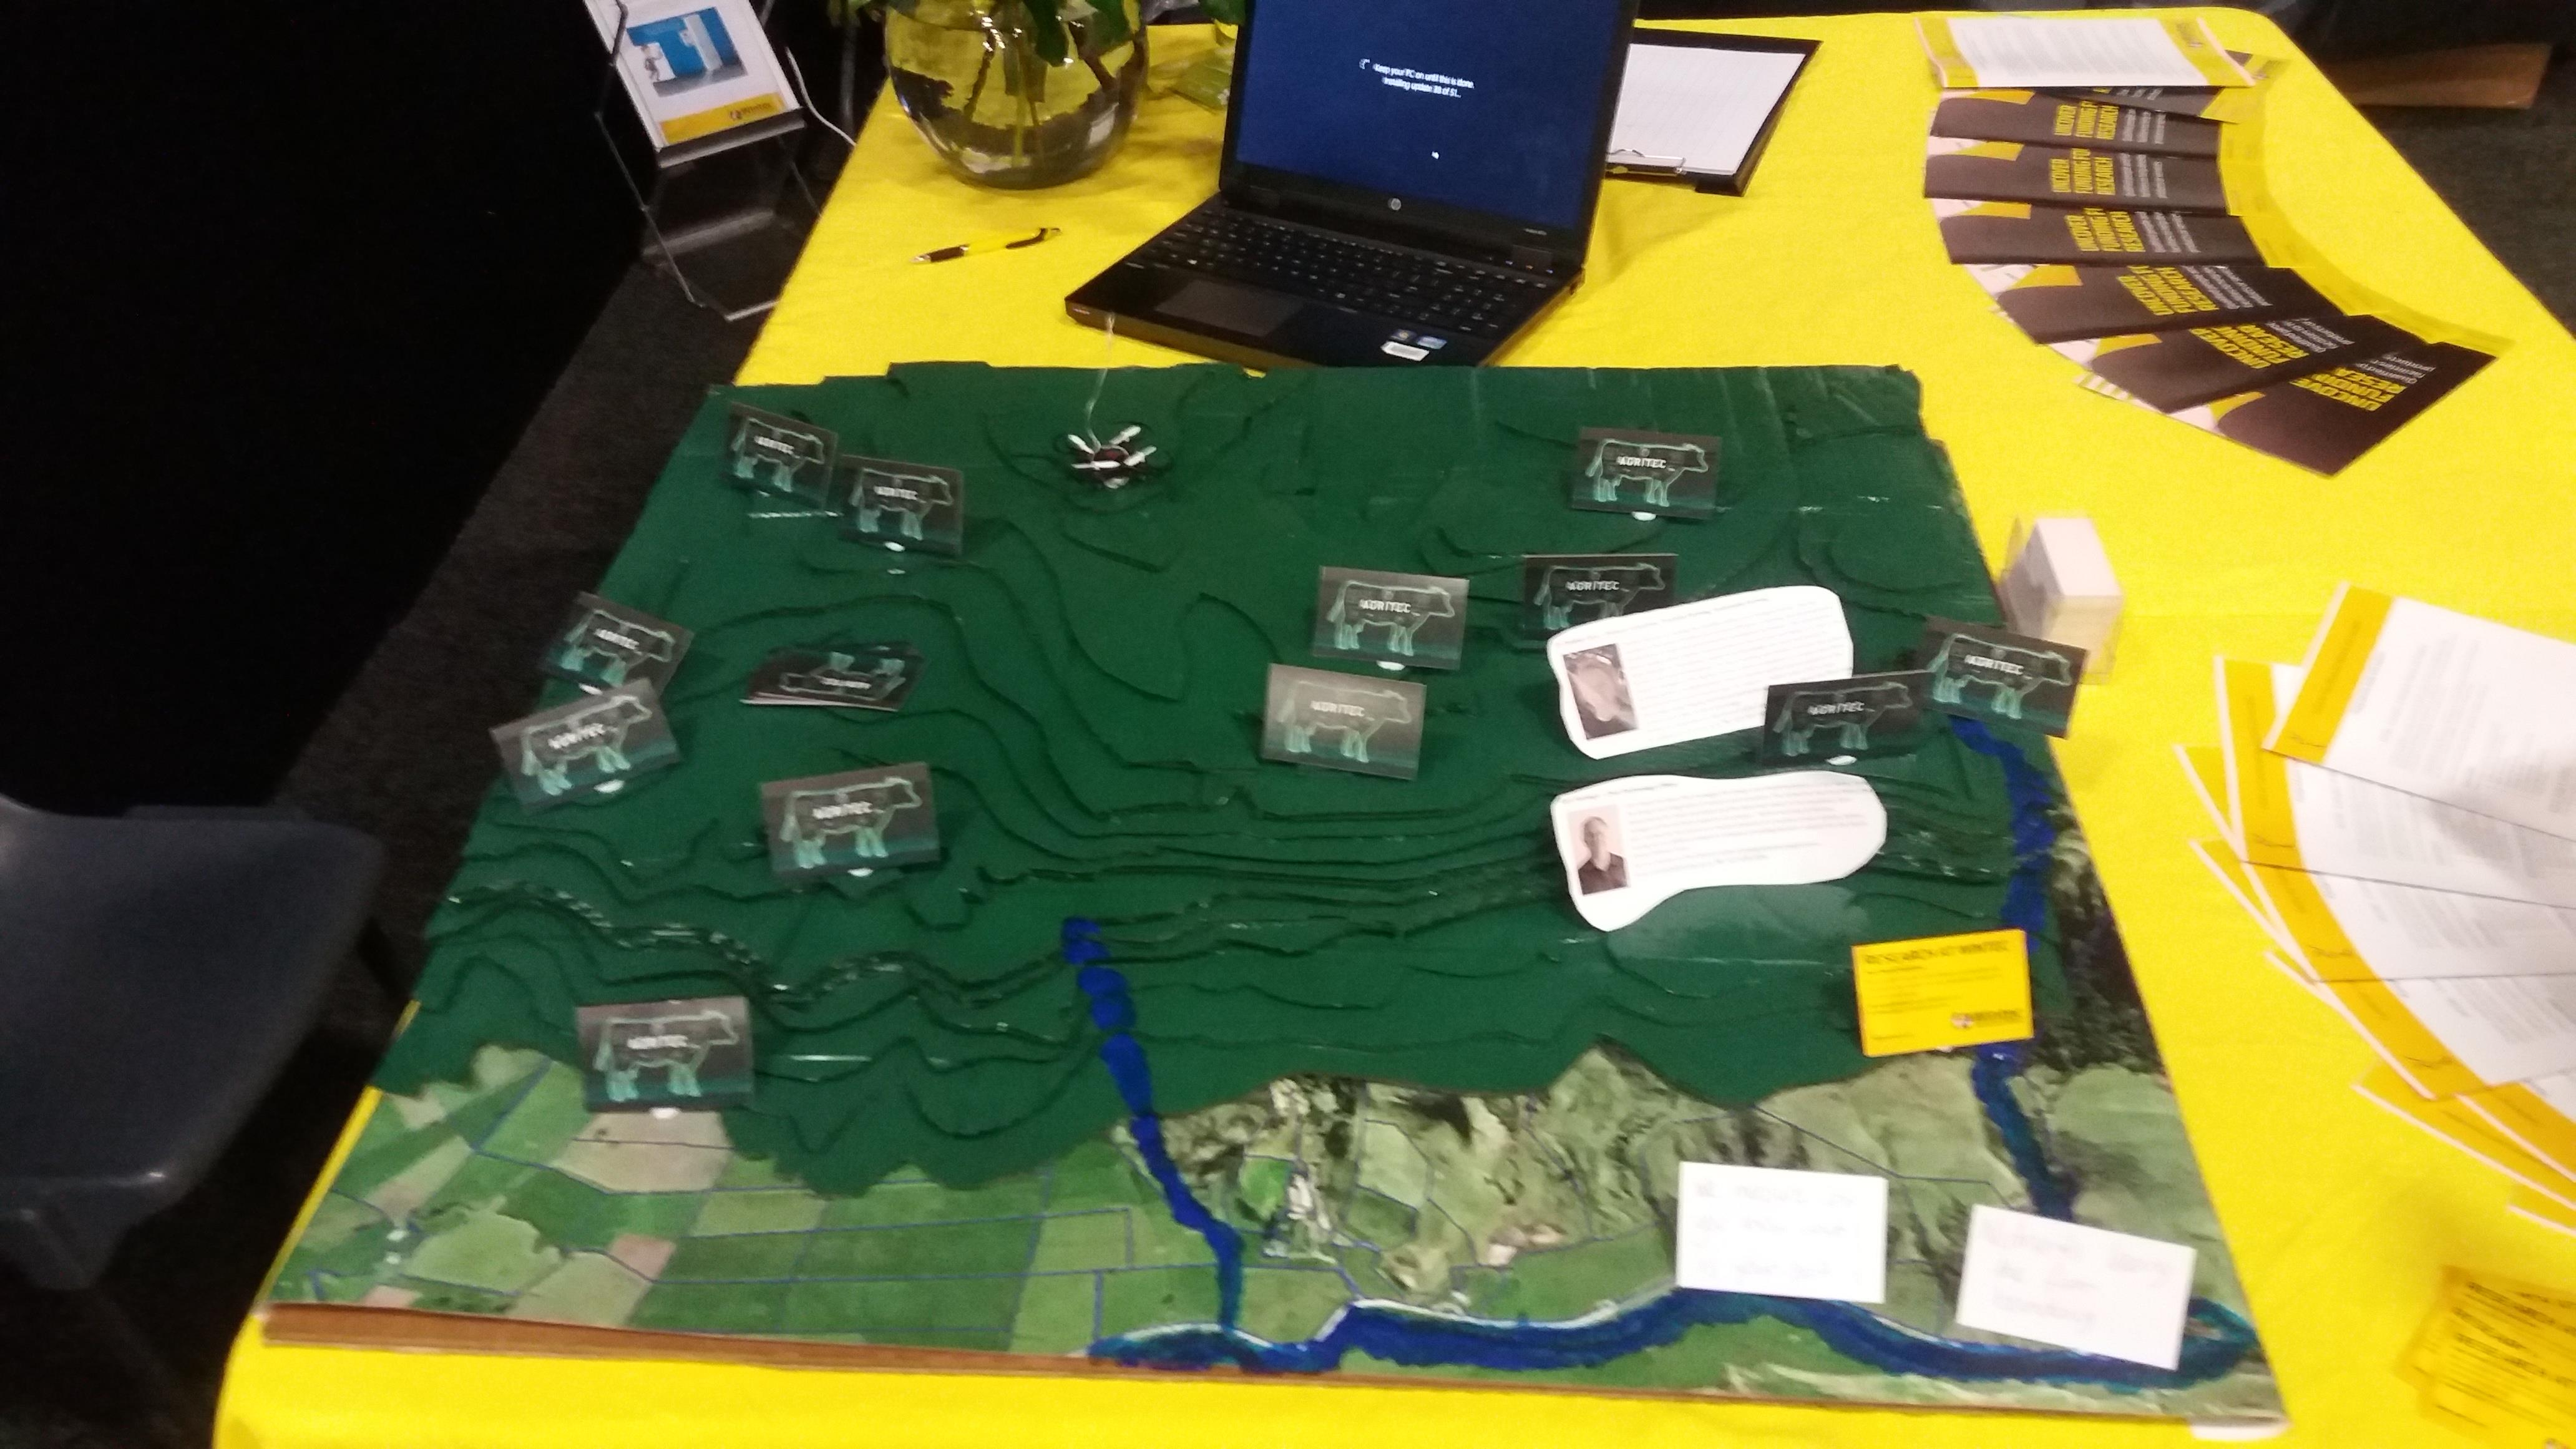 Transdisciplinary research display at Fieldays